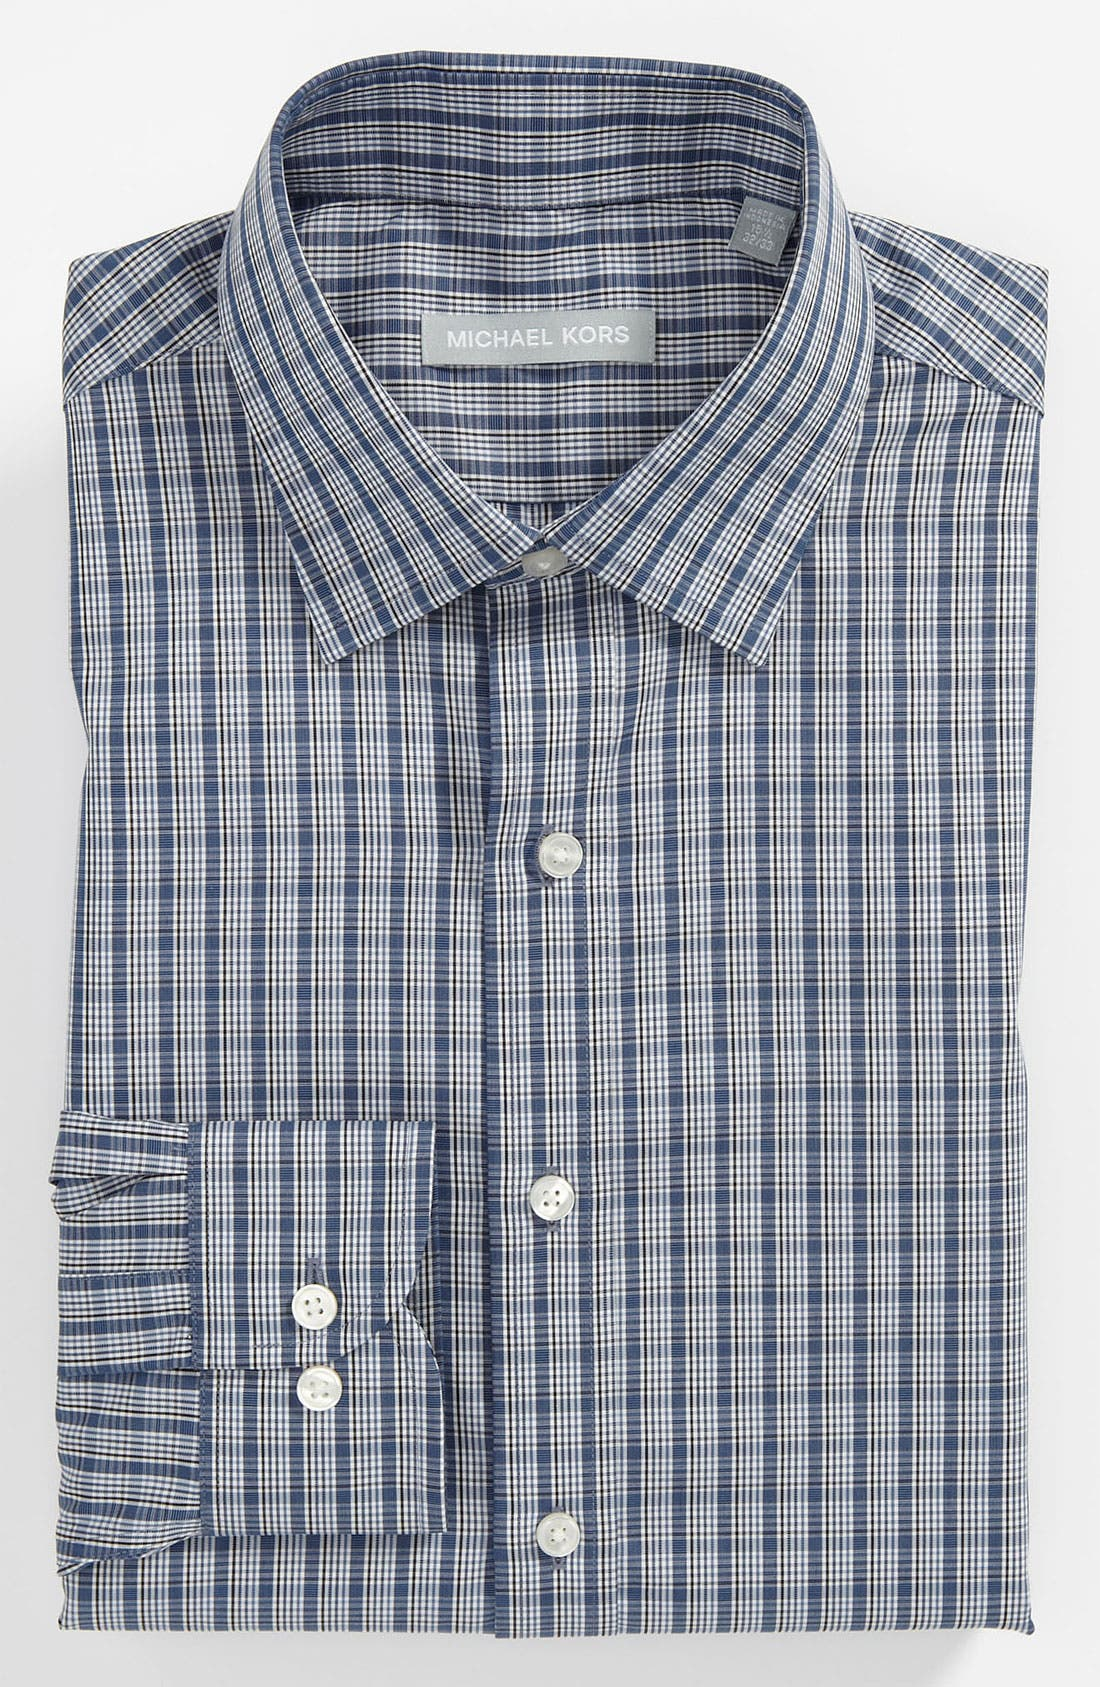 Main Image - Michael Kors Regular Fit Dress Shirt